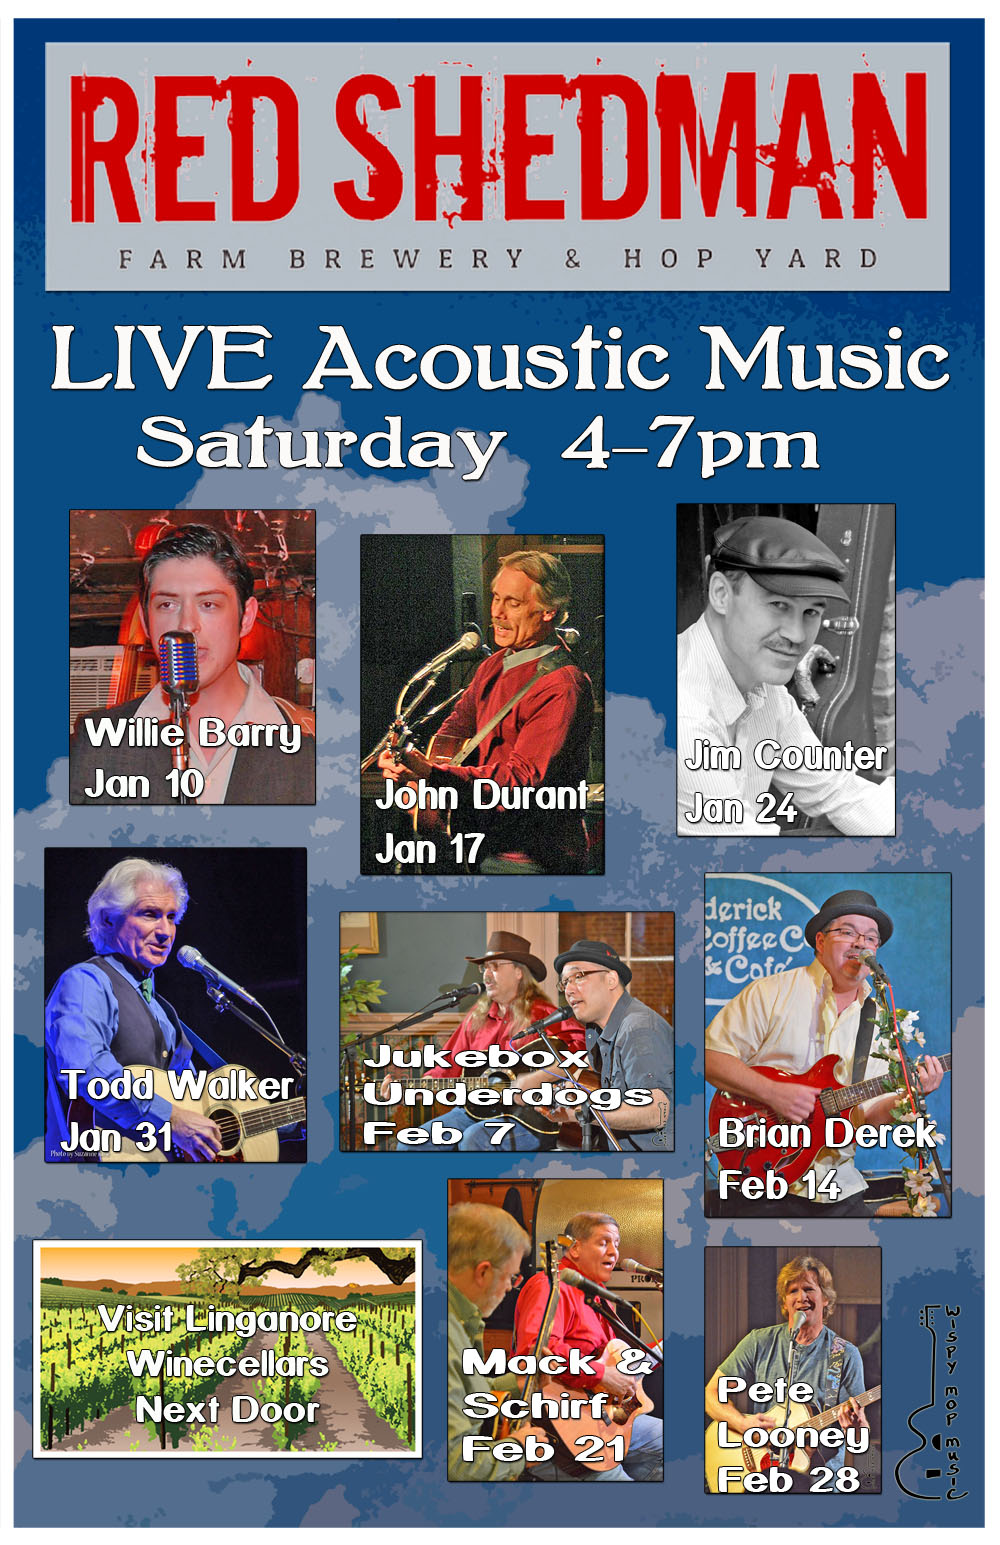 Live Music Saturdays @ Red Shedman Farm Brewery @ Linganore Winecellars | Mount Airy | Maryland | United States